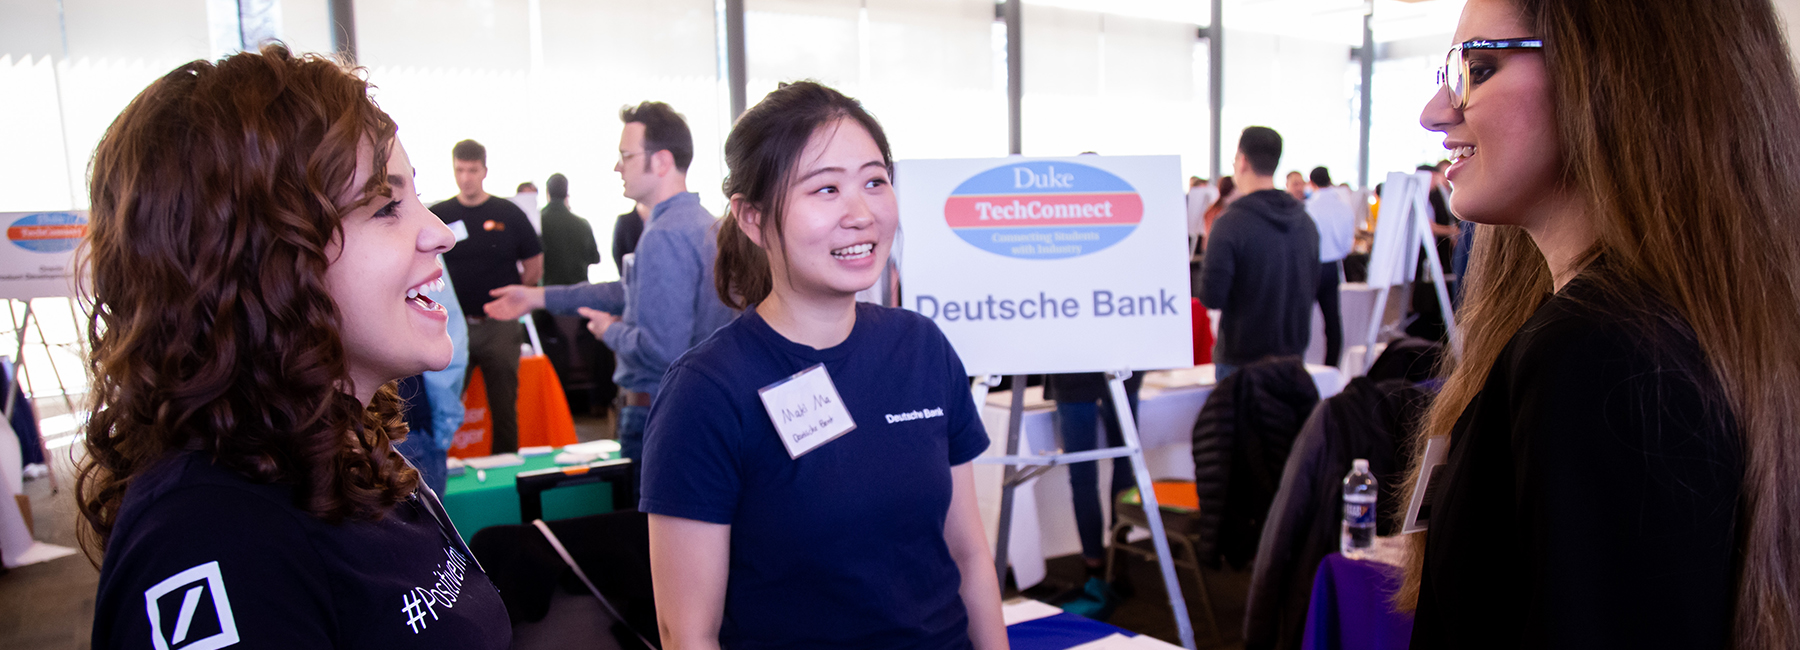 Deutsche Bank at Duke TechConnect January 2020 event